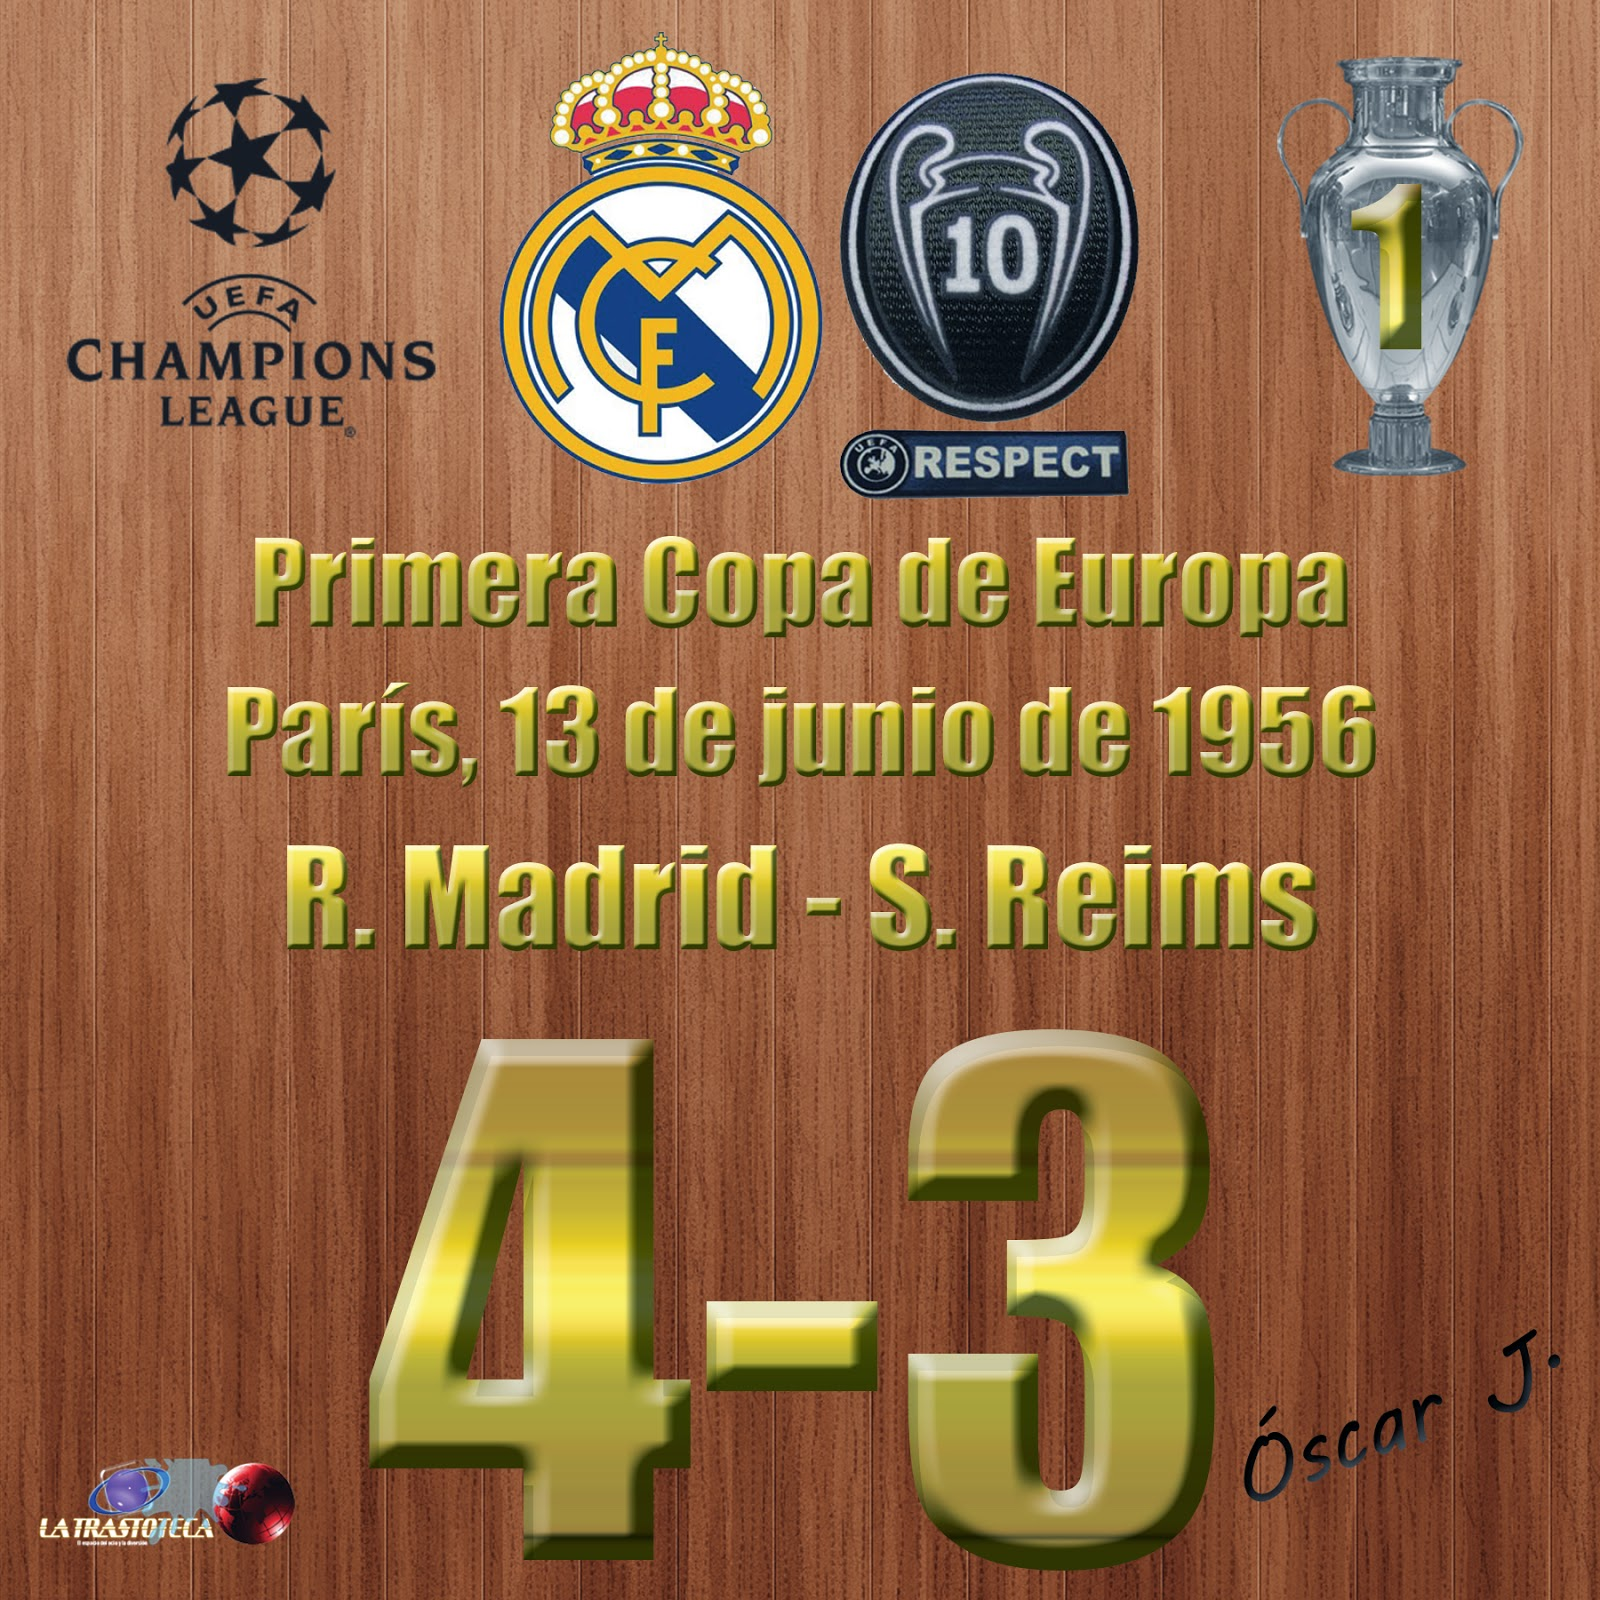 Real Madrid 4-3 Stade de Reims. Primera Copa de Europa del Real Madrid.